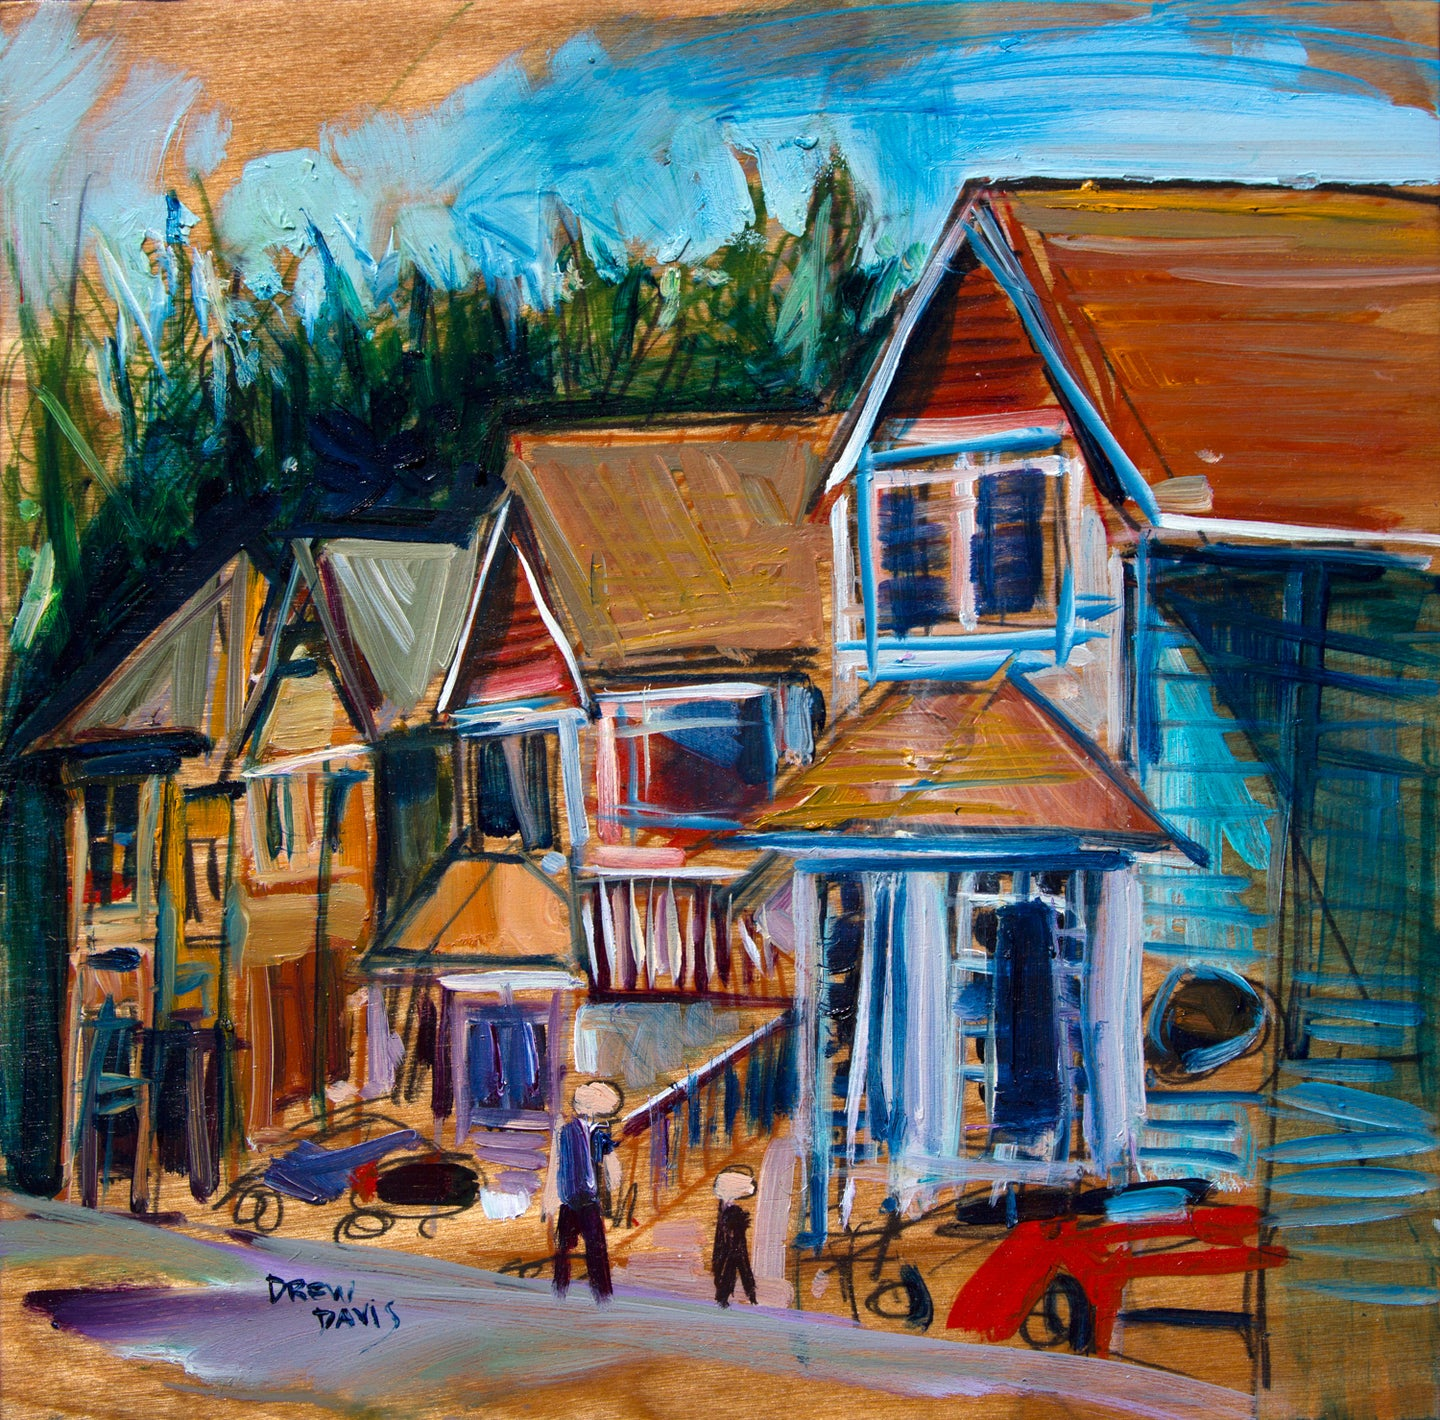 Burton Street - Cambria | 12x12 | Original Oil on Wood - Framed